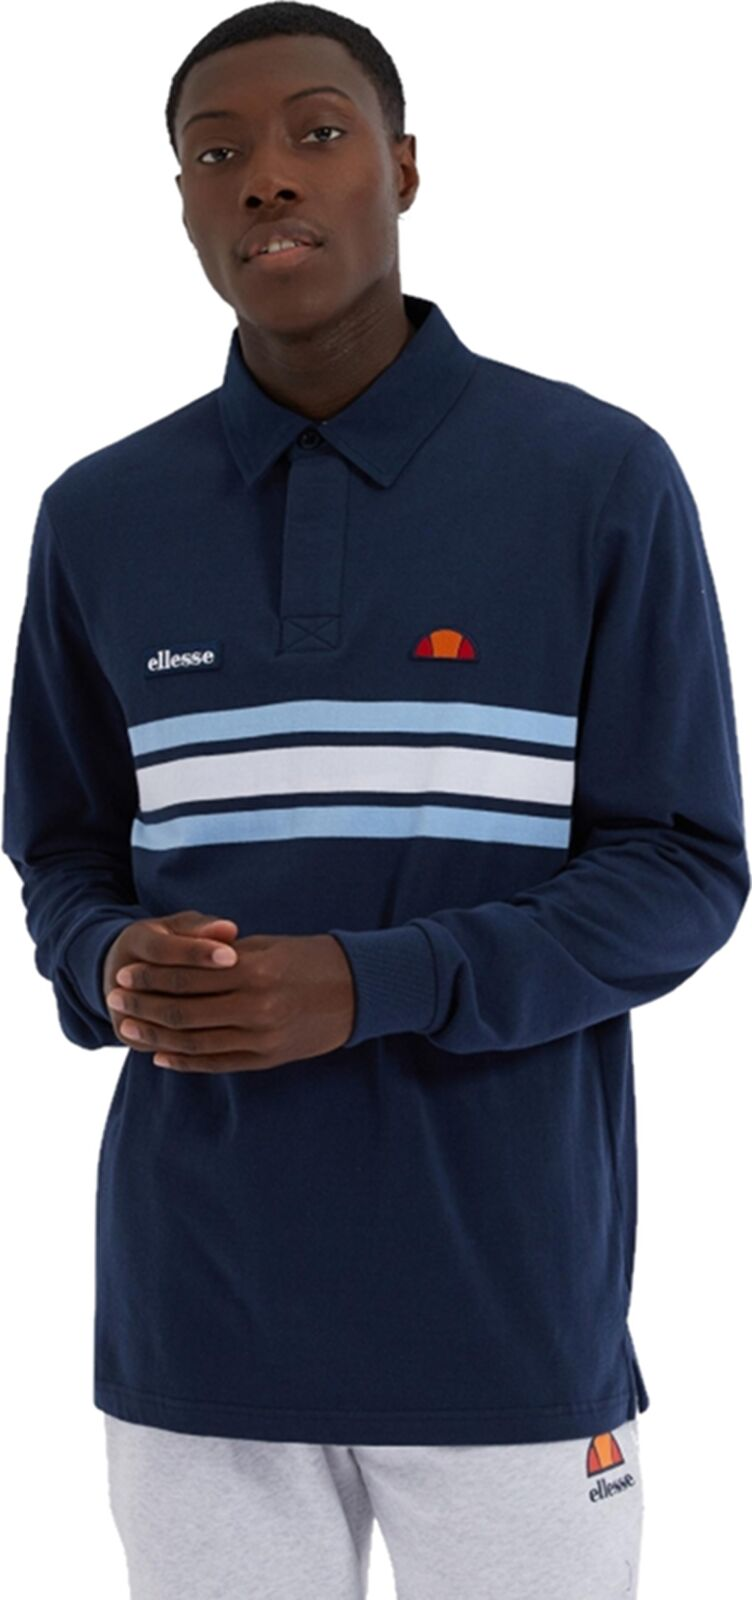 Ellesse Mazzi Rugby Shirt Navy